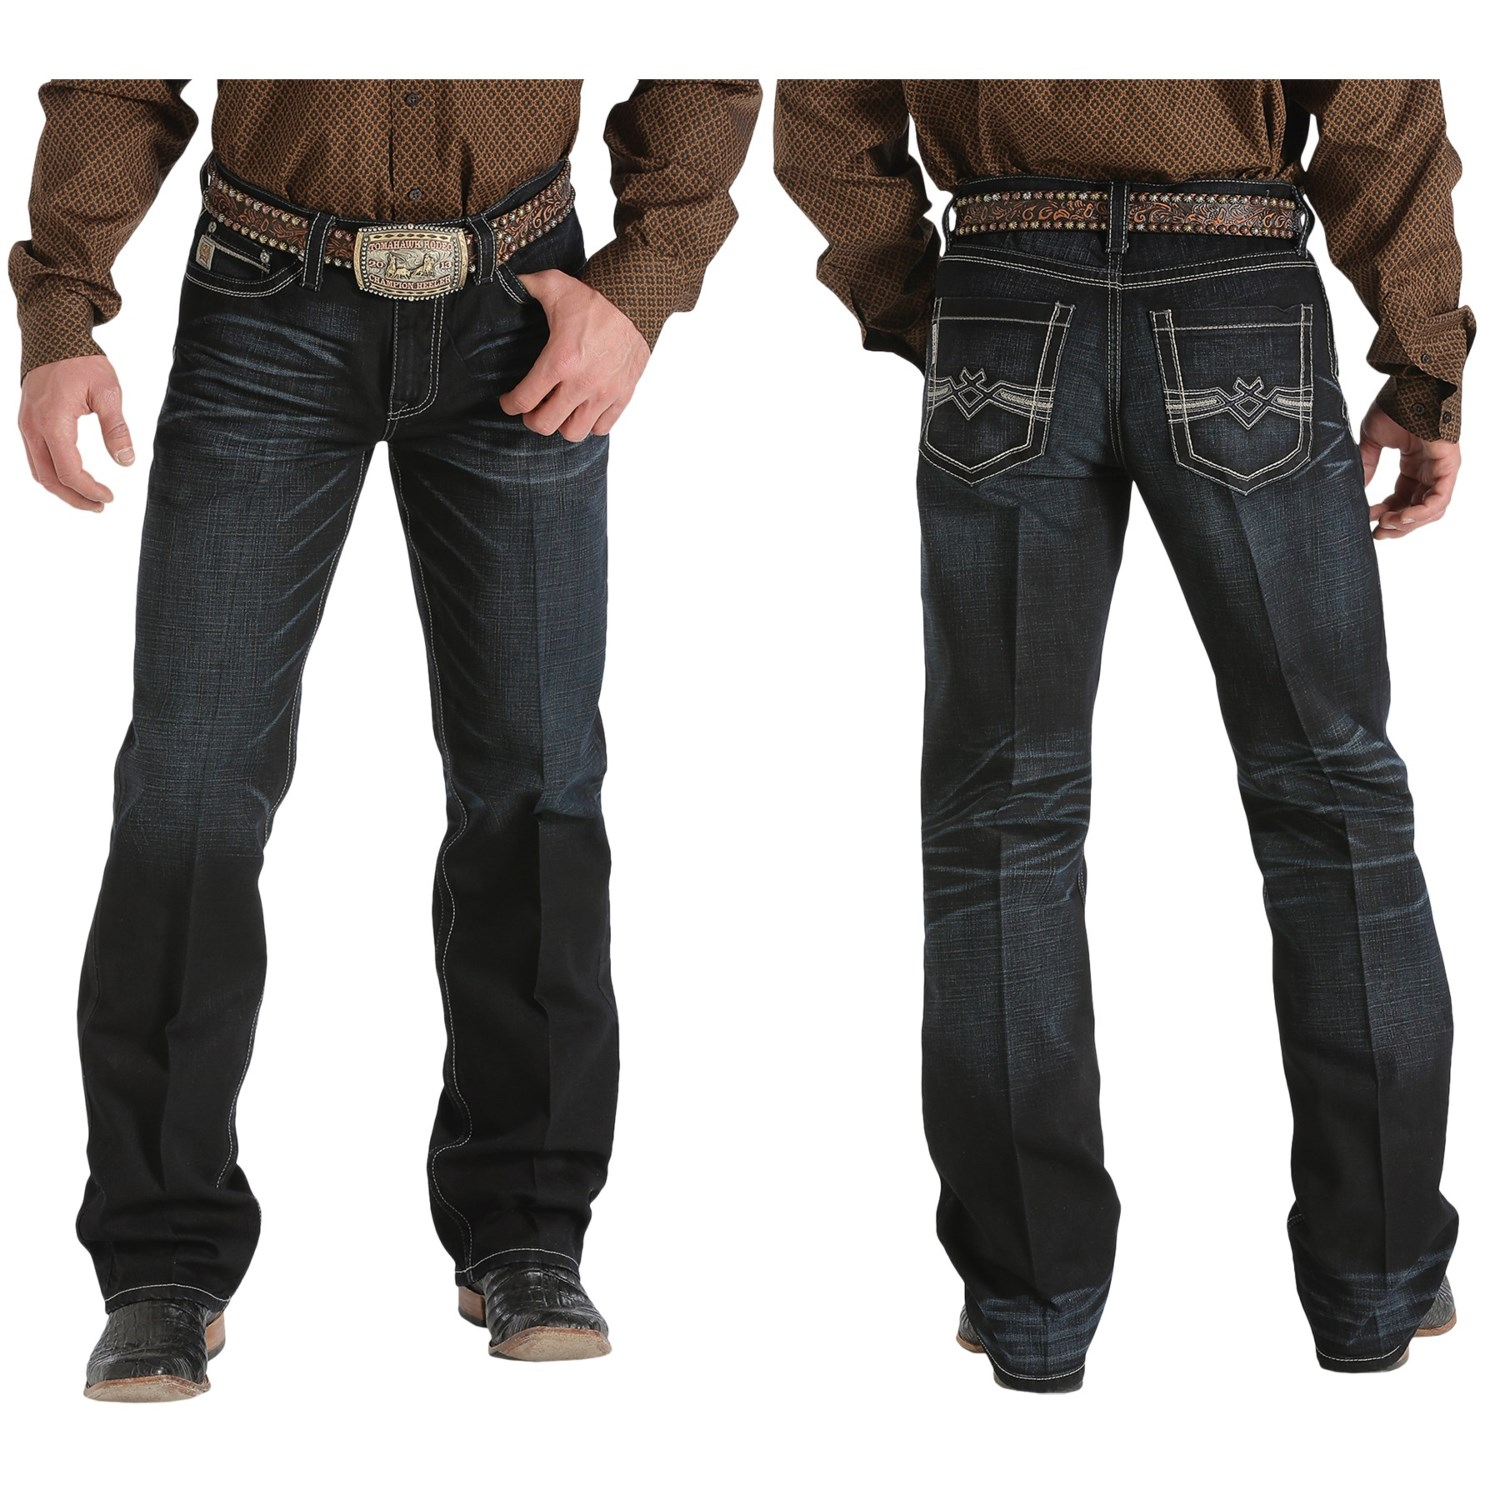 Cinch Grant Mid-Rise Jeans (For Men) 7575A - Save 62%